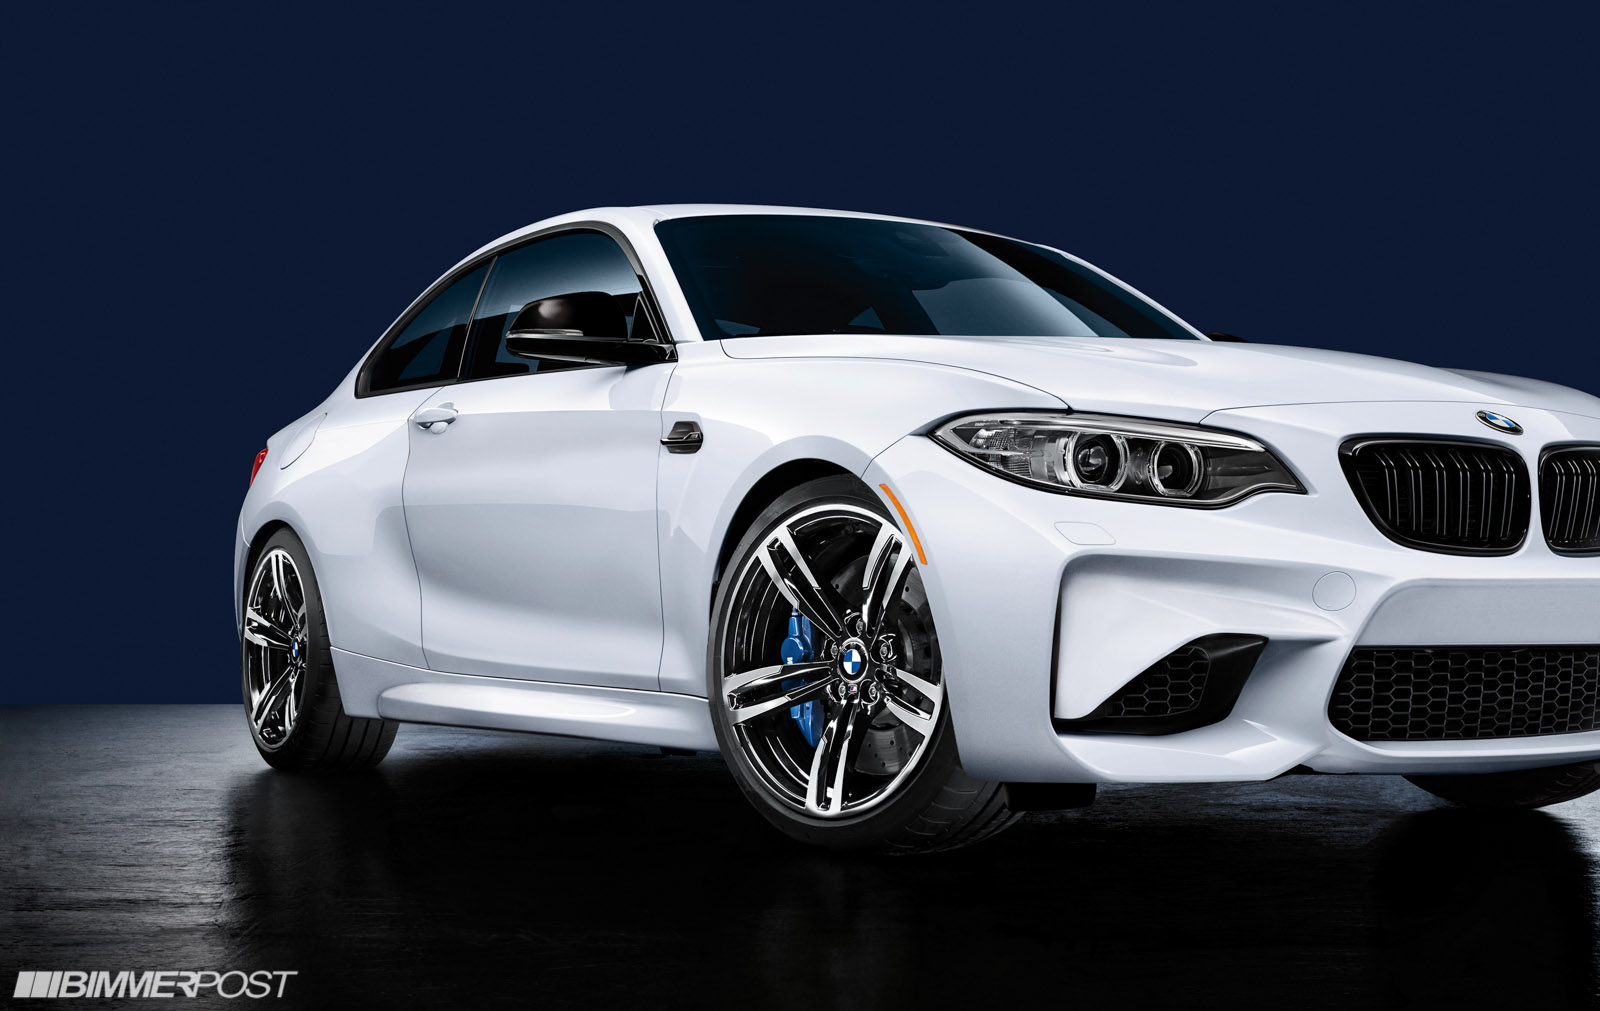 2017 Bmw M2 Performance Edition Official Details Limited To 150 Units